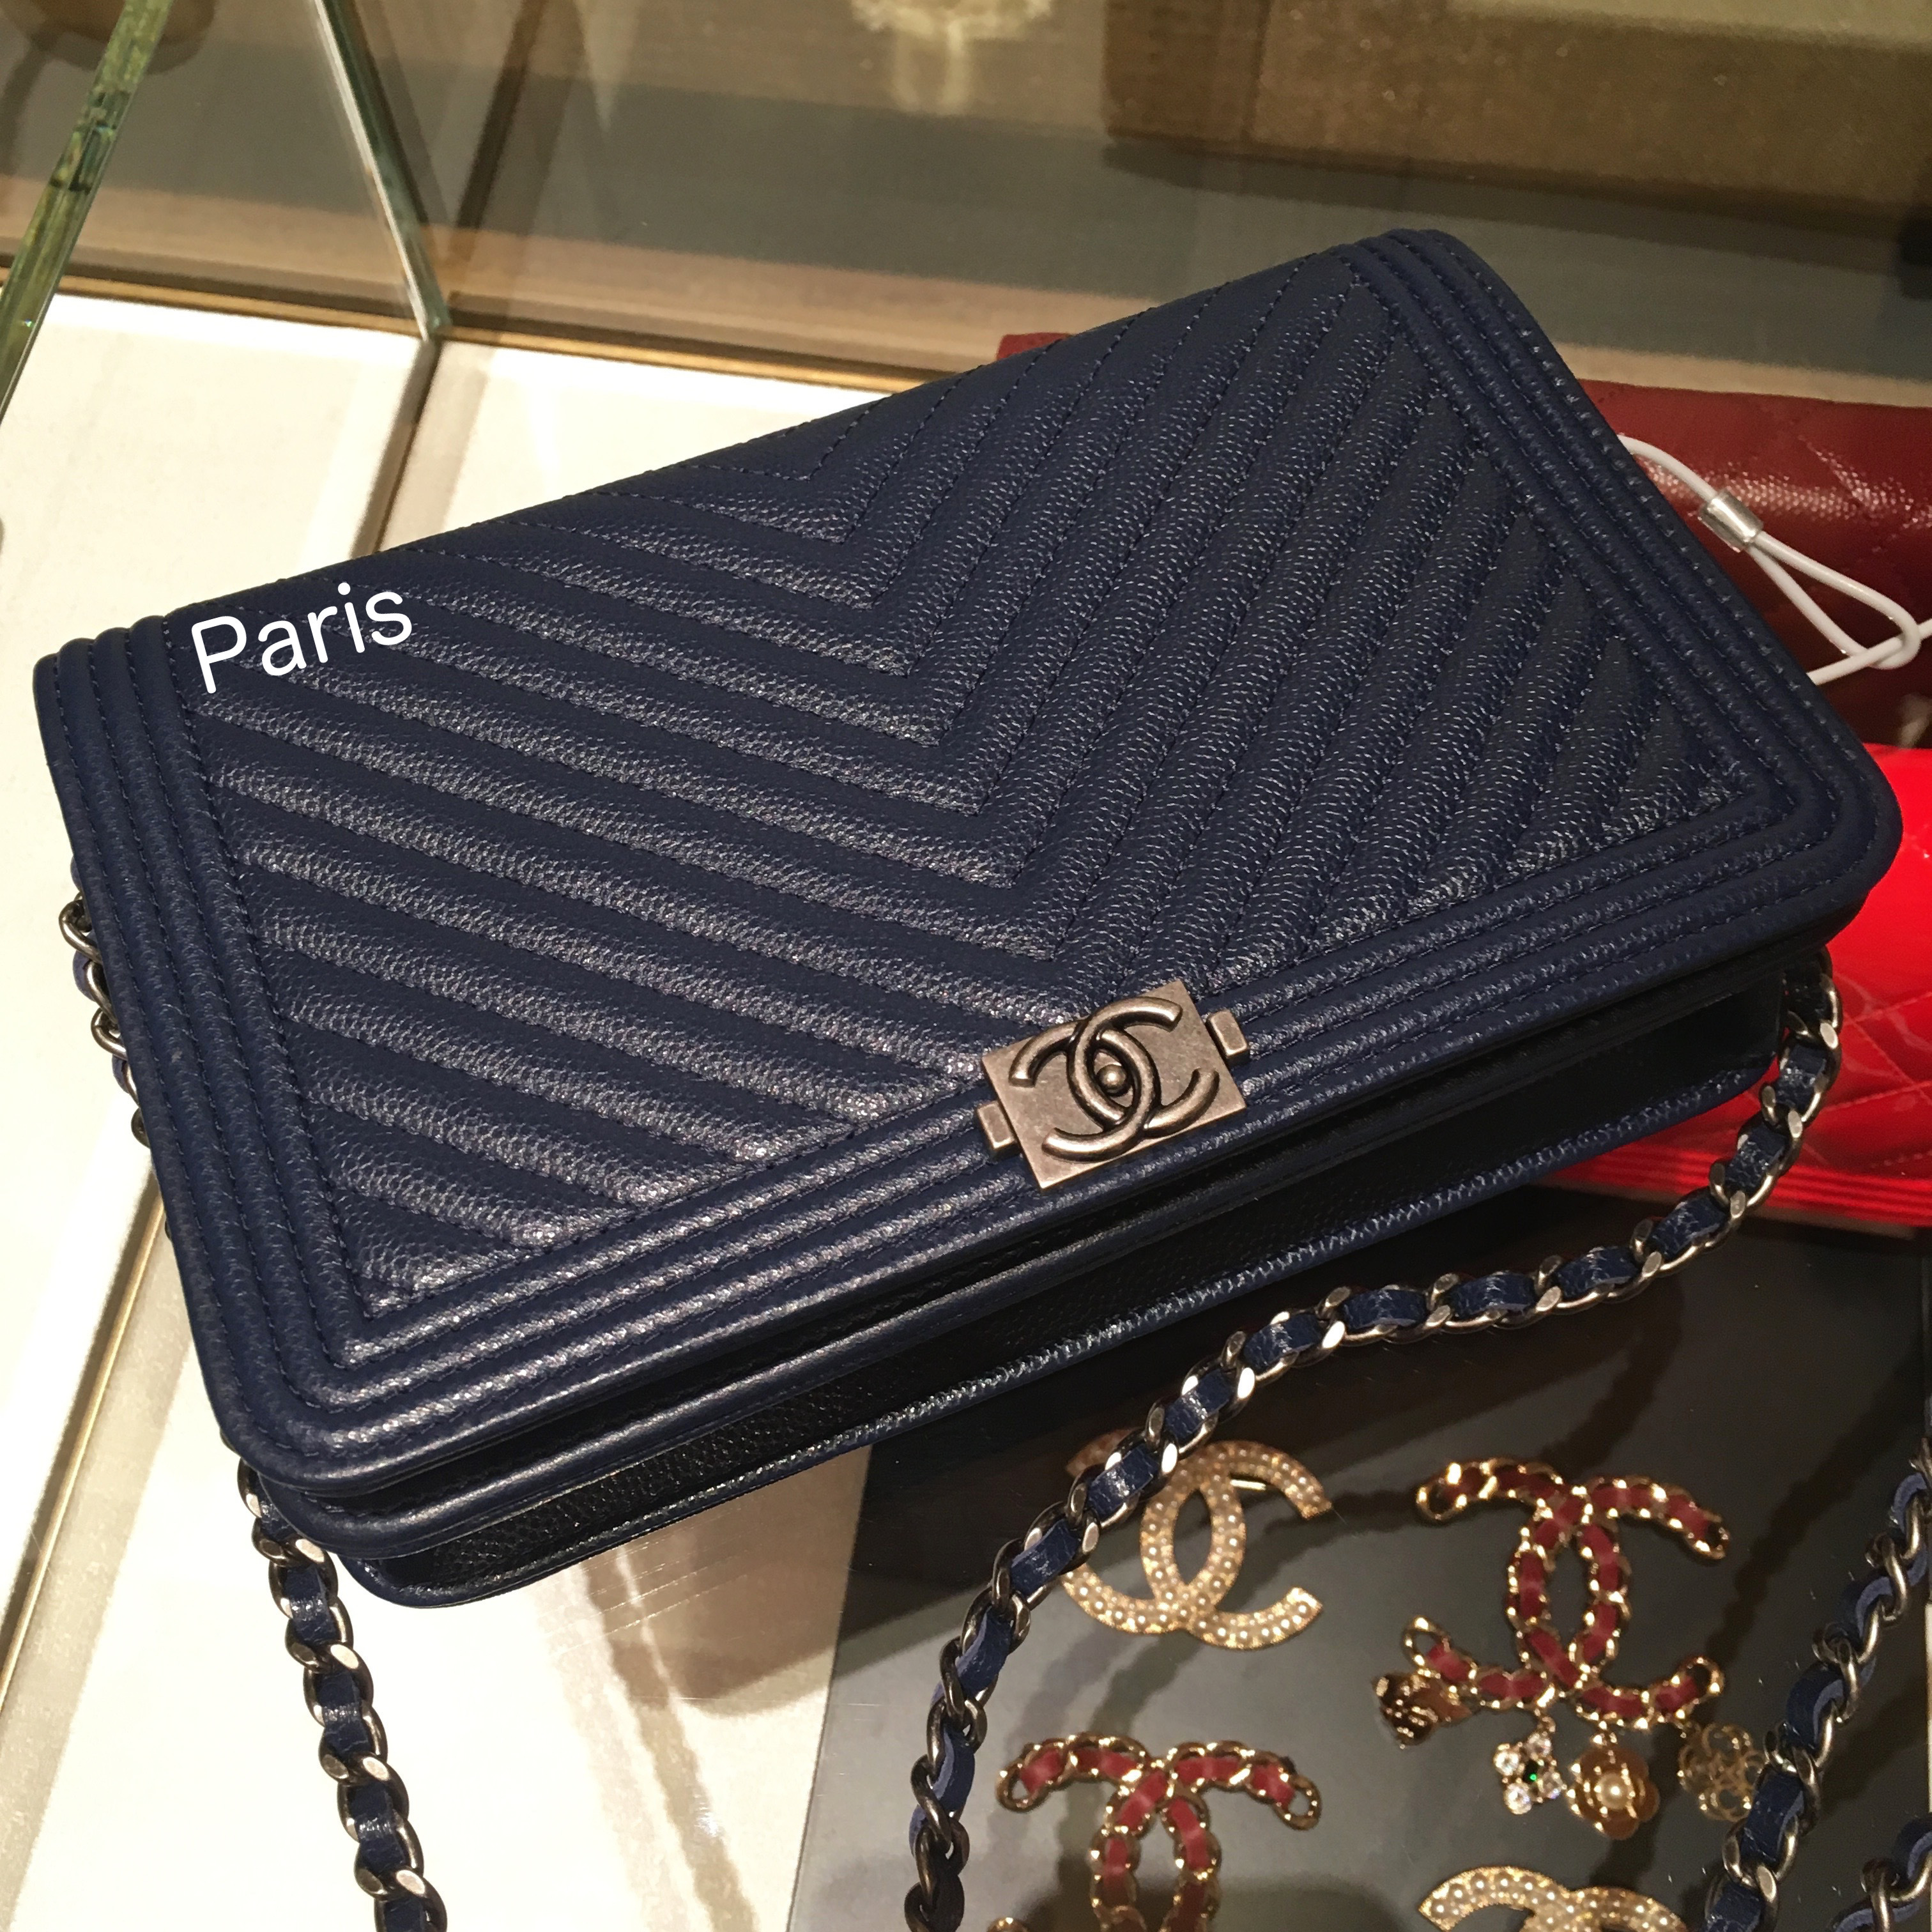 17AW限定!CHANEL《洗練されたモード感♪》WOC A80287 NAVY♪